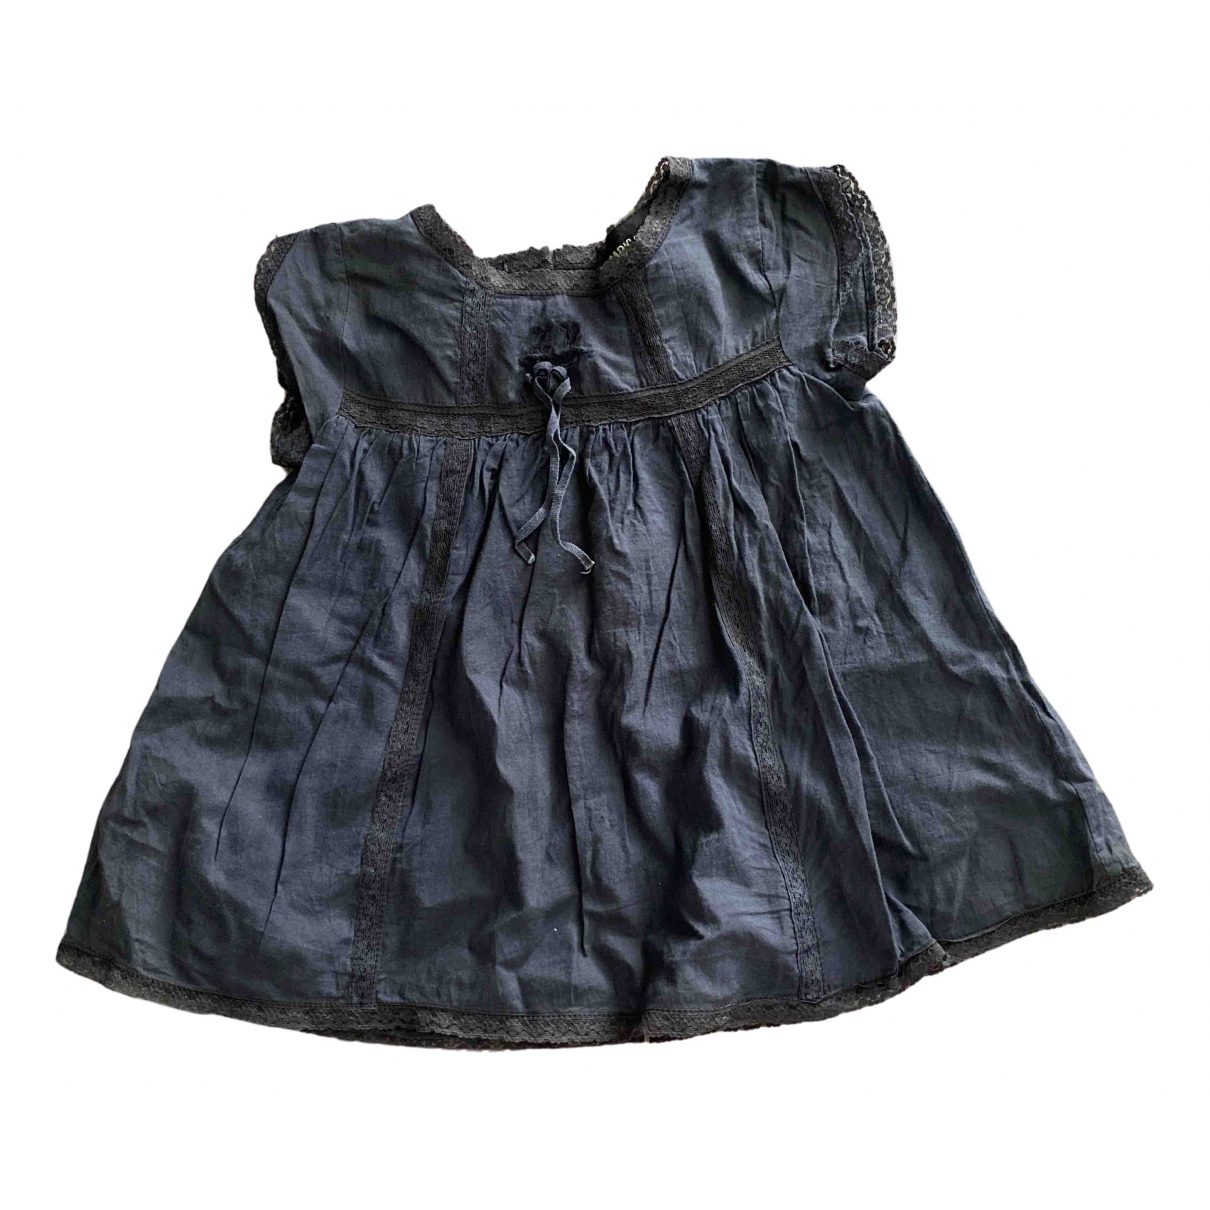 Zadig & Voltaire N Anthracite Cotton dress for Kids 6 months - up to 67cm FR